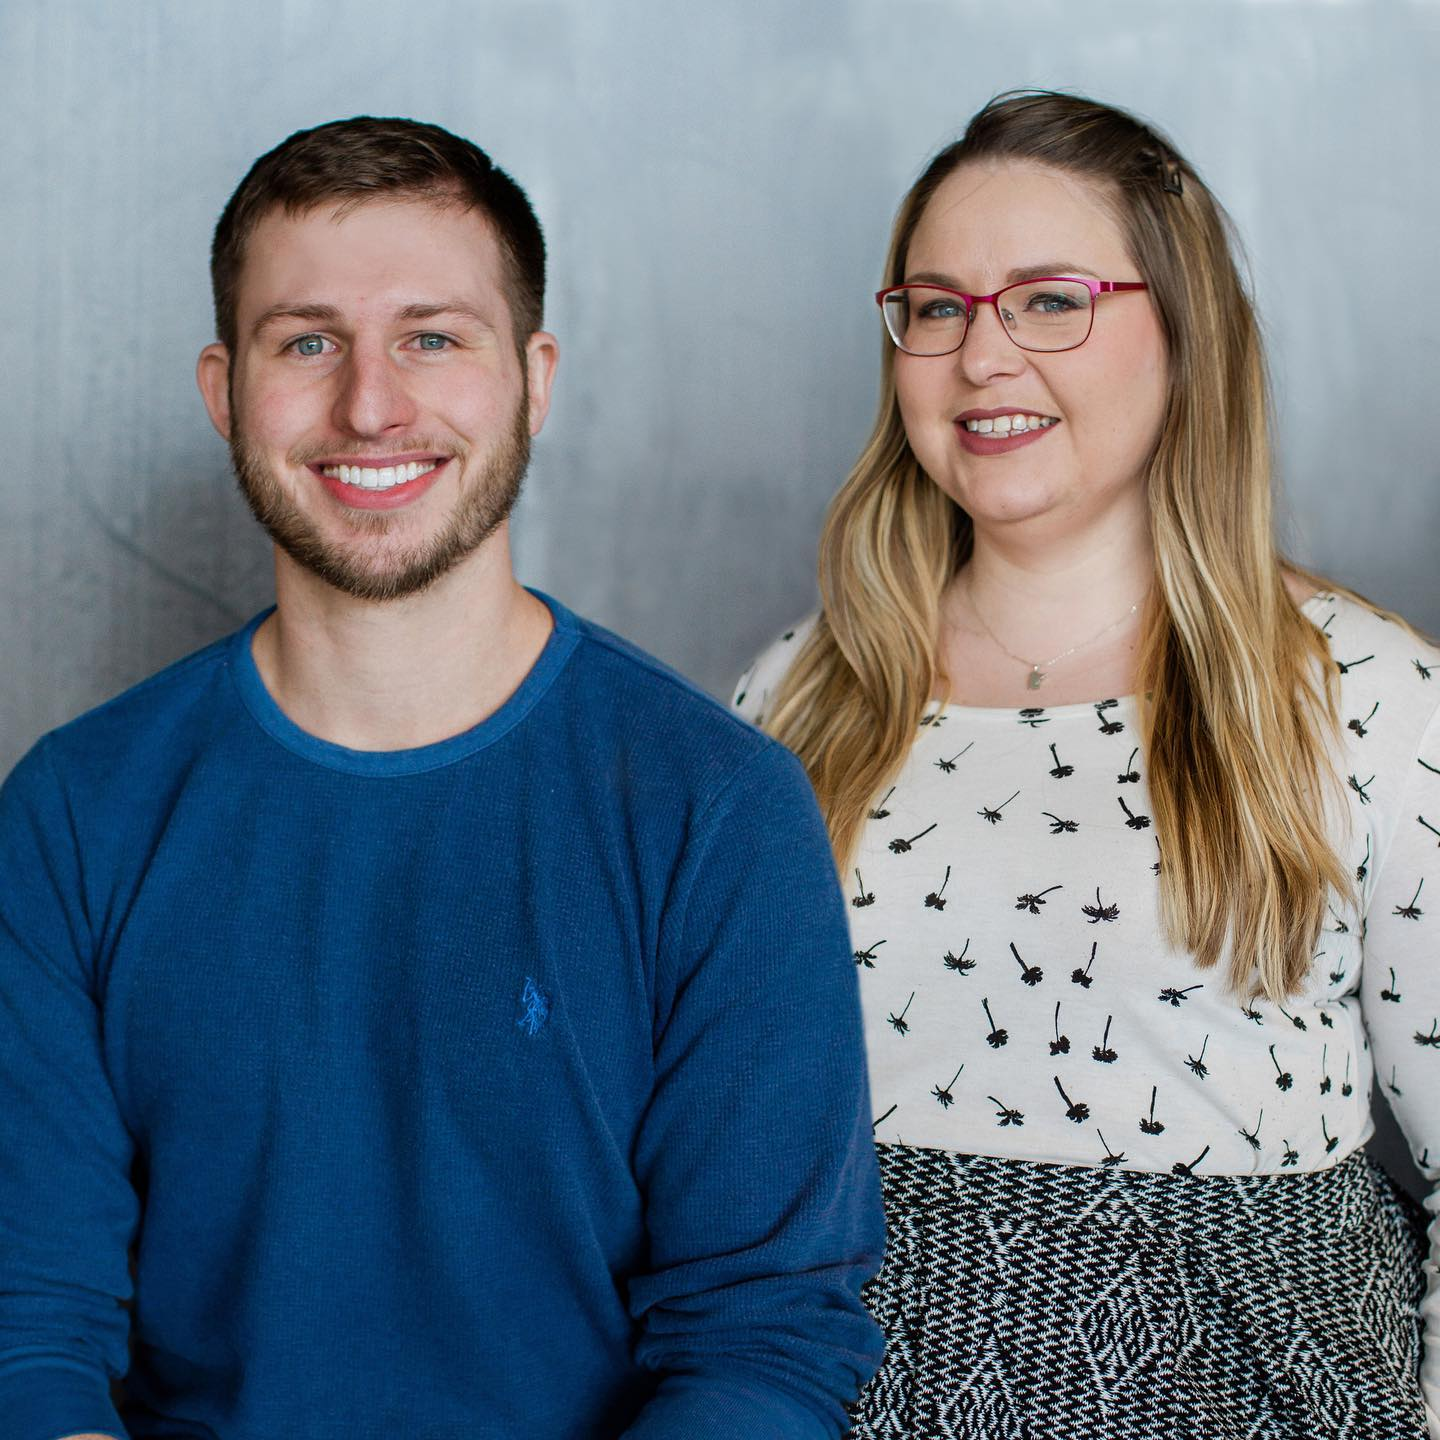 We're pleased to announce that Amanda Pederson and John Nieuwenhuis have been promoted to Associate! Congrats to you both! ....#djrarchitecture